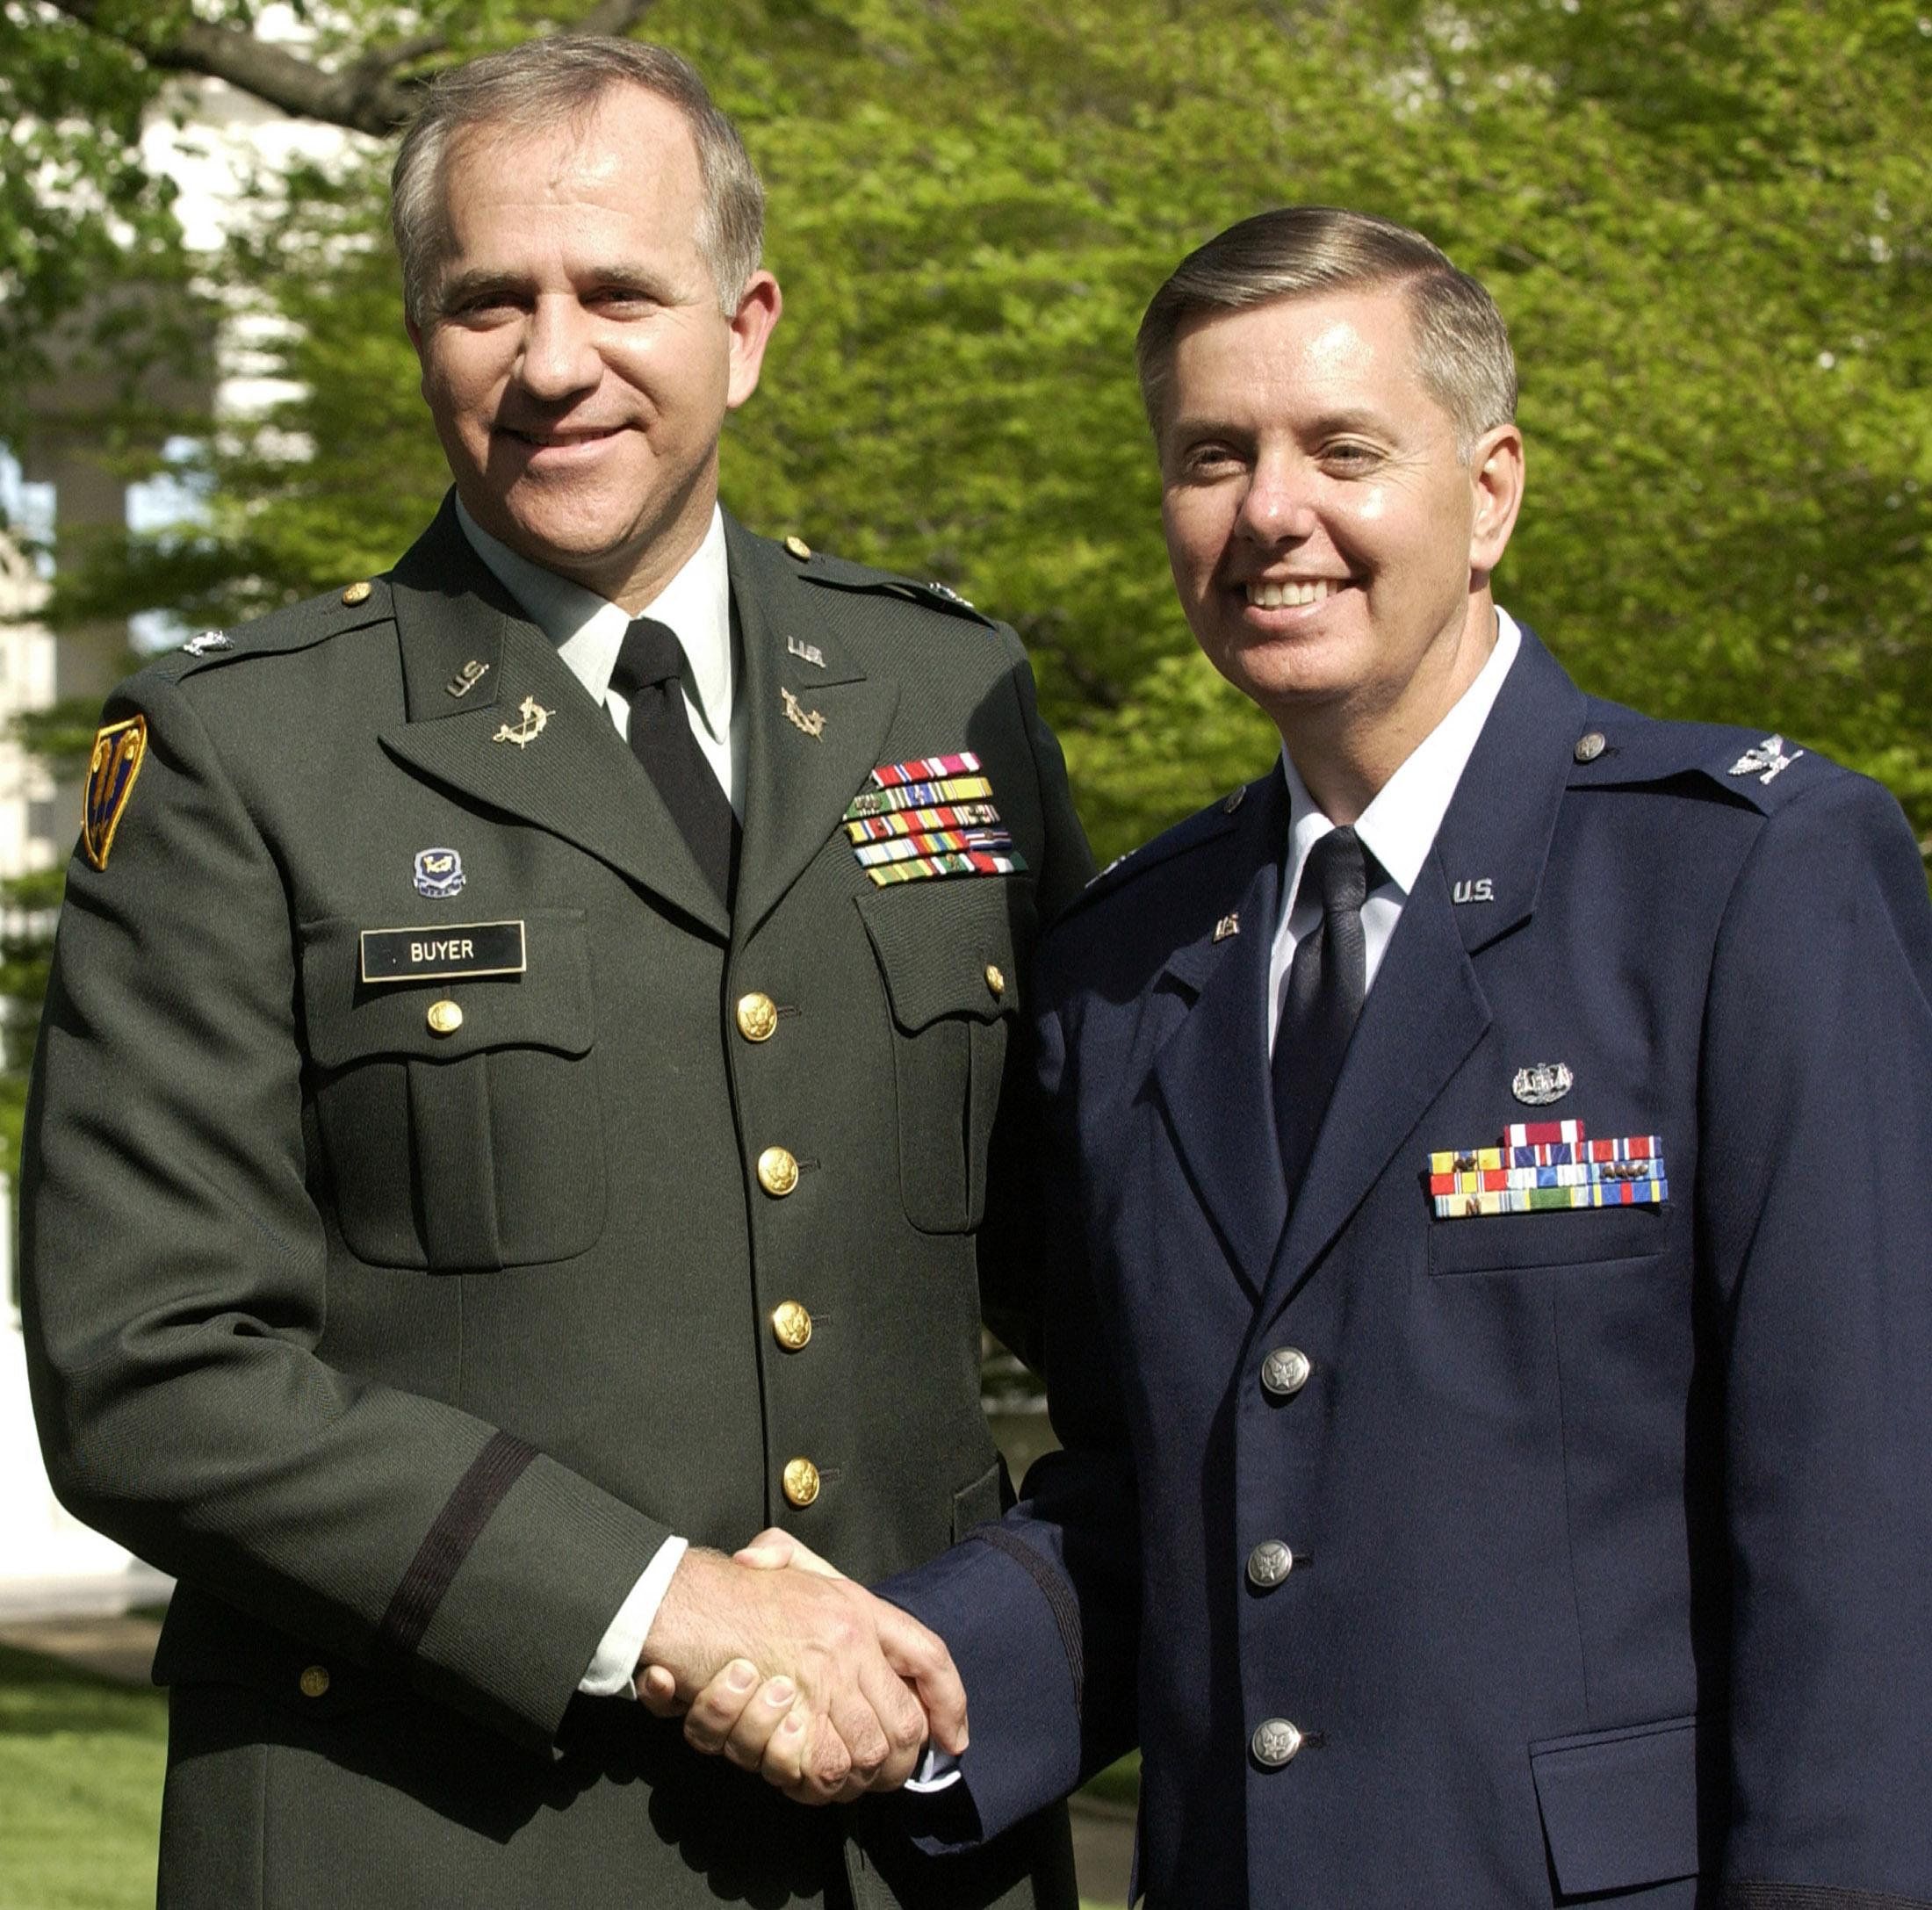 Sen. Lindsay Graham In Air Force uniform